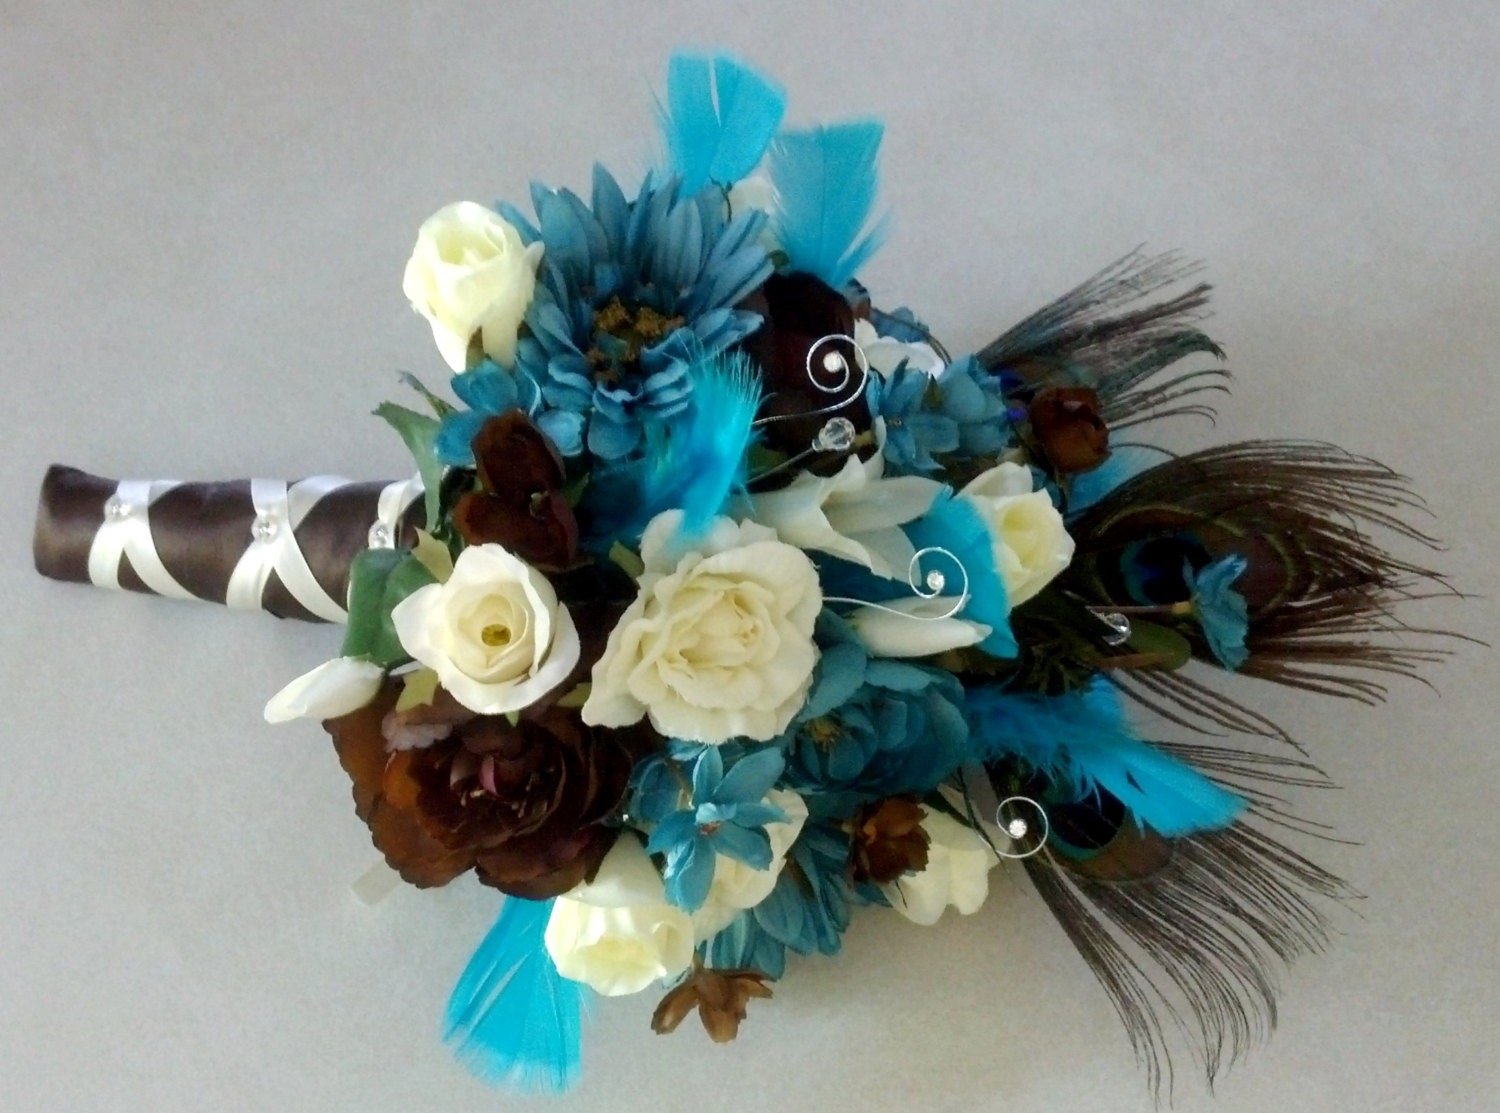 Brown And Teal Wedding Ideas: Peacock Destination Wedding Flowers Turquoise Teal Blue Brown